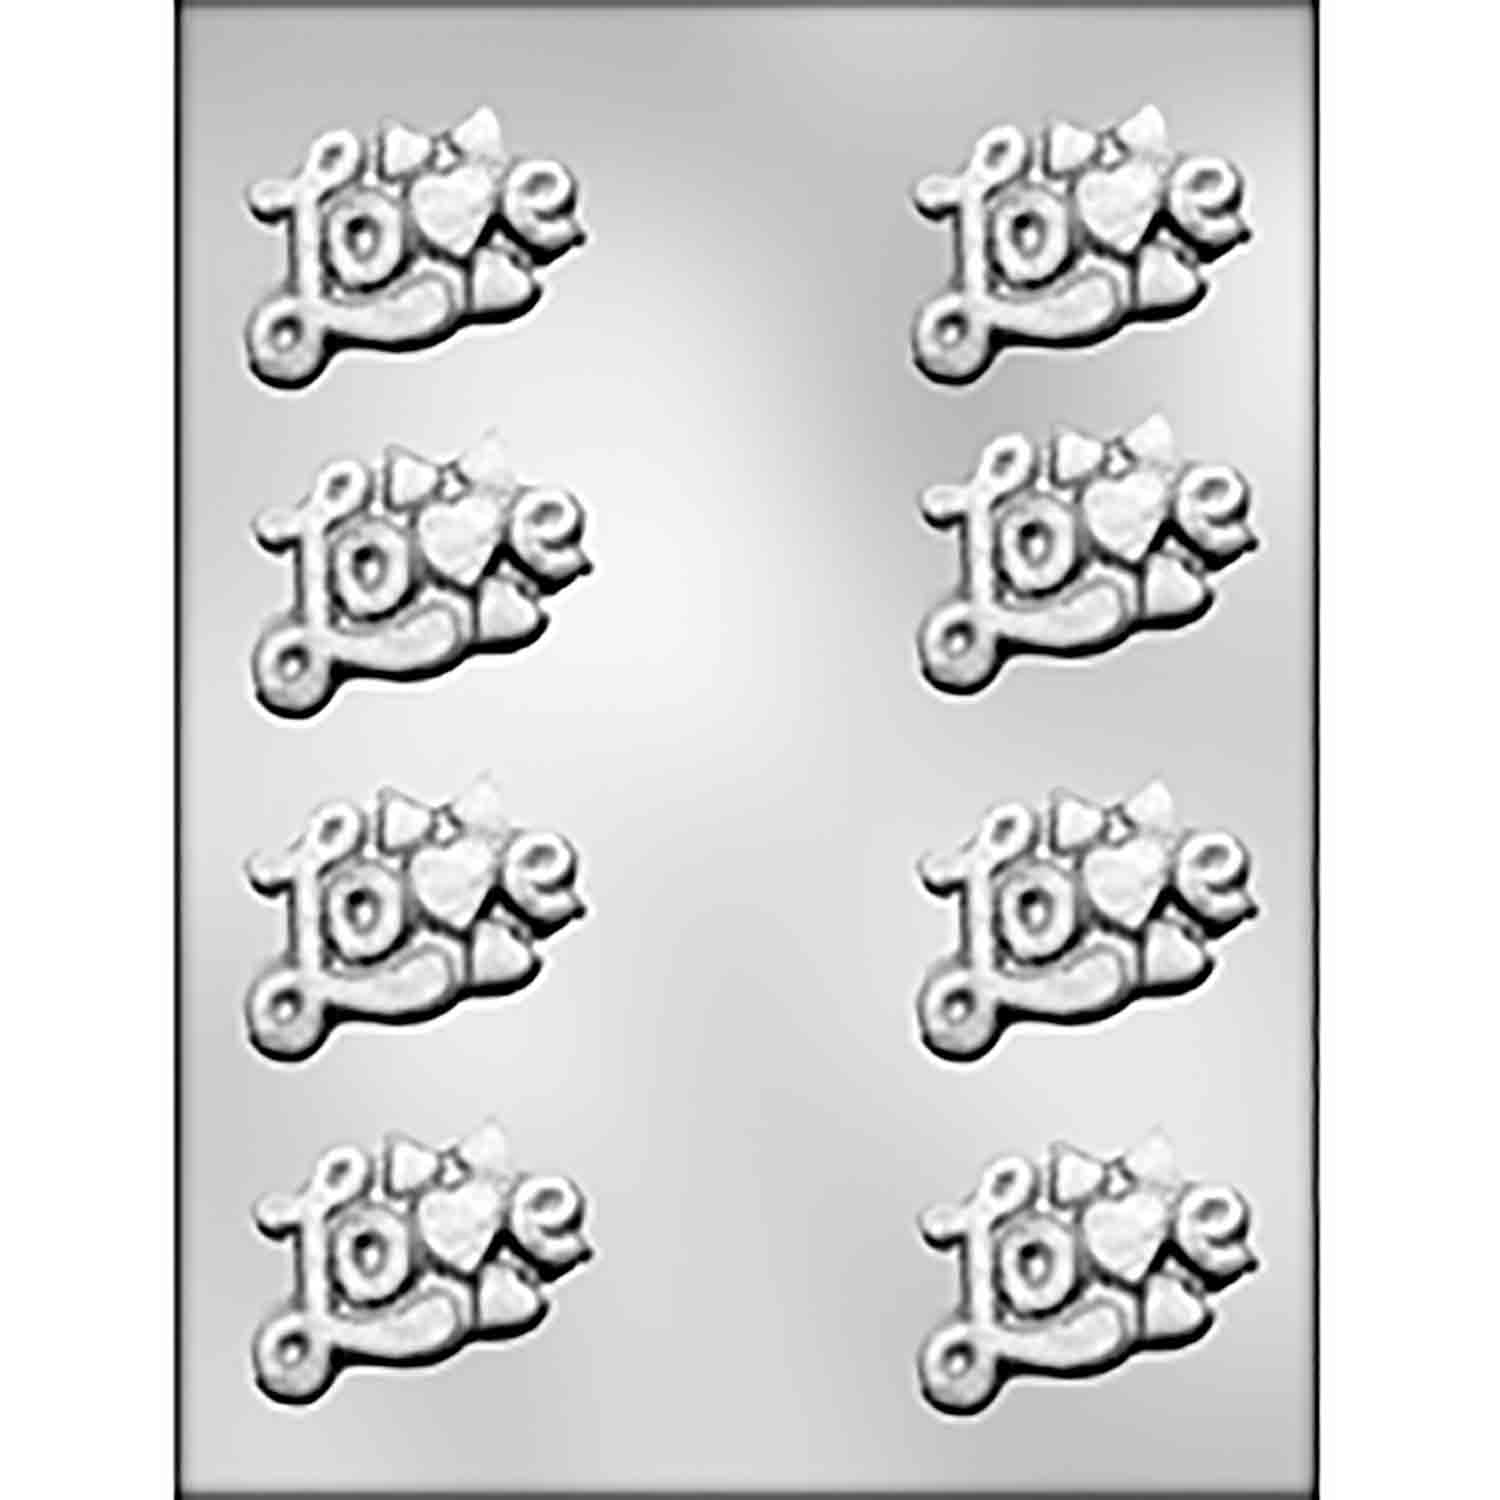 L-O-V-E with Small Hearts Chocolate Candy Mold